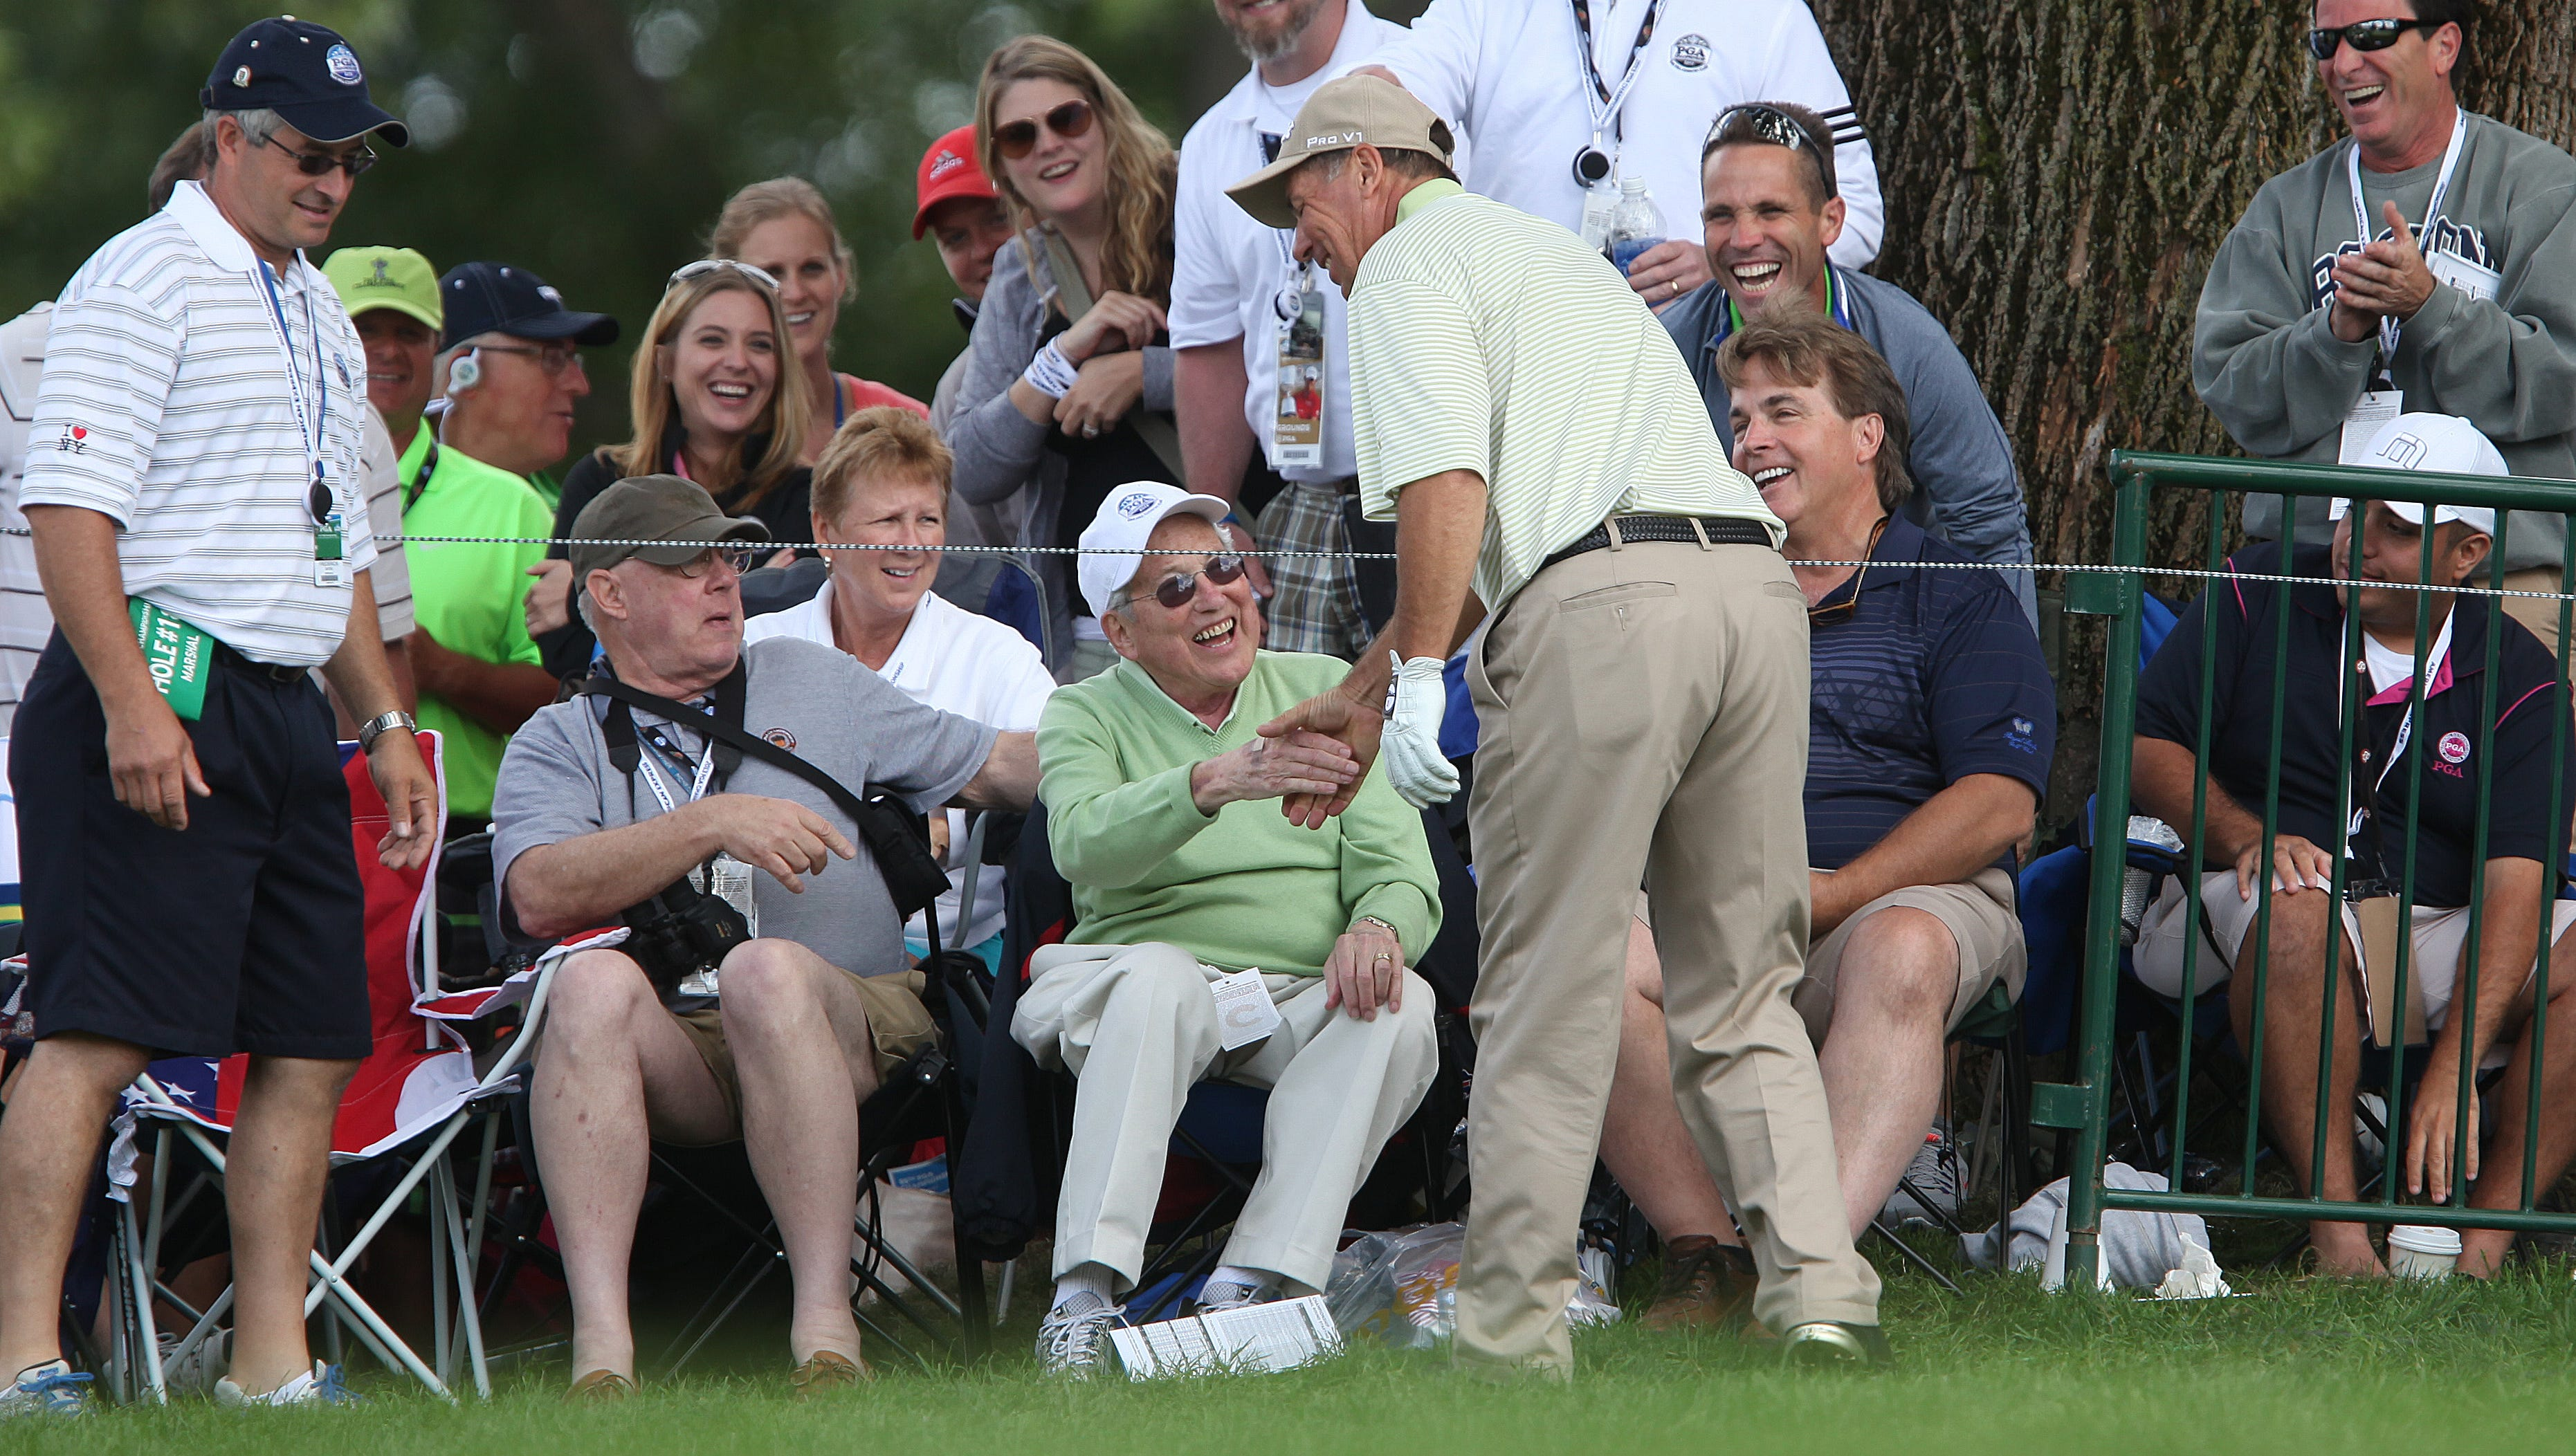 Rob Horack of Fairoport shakes hands with fans after his ball landed near them on 18 during the final round of the PGA Championship at Oak Hill Sunday.